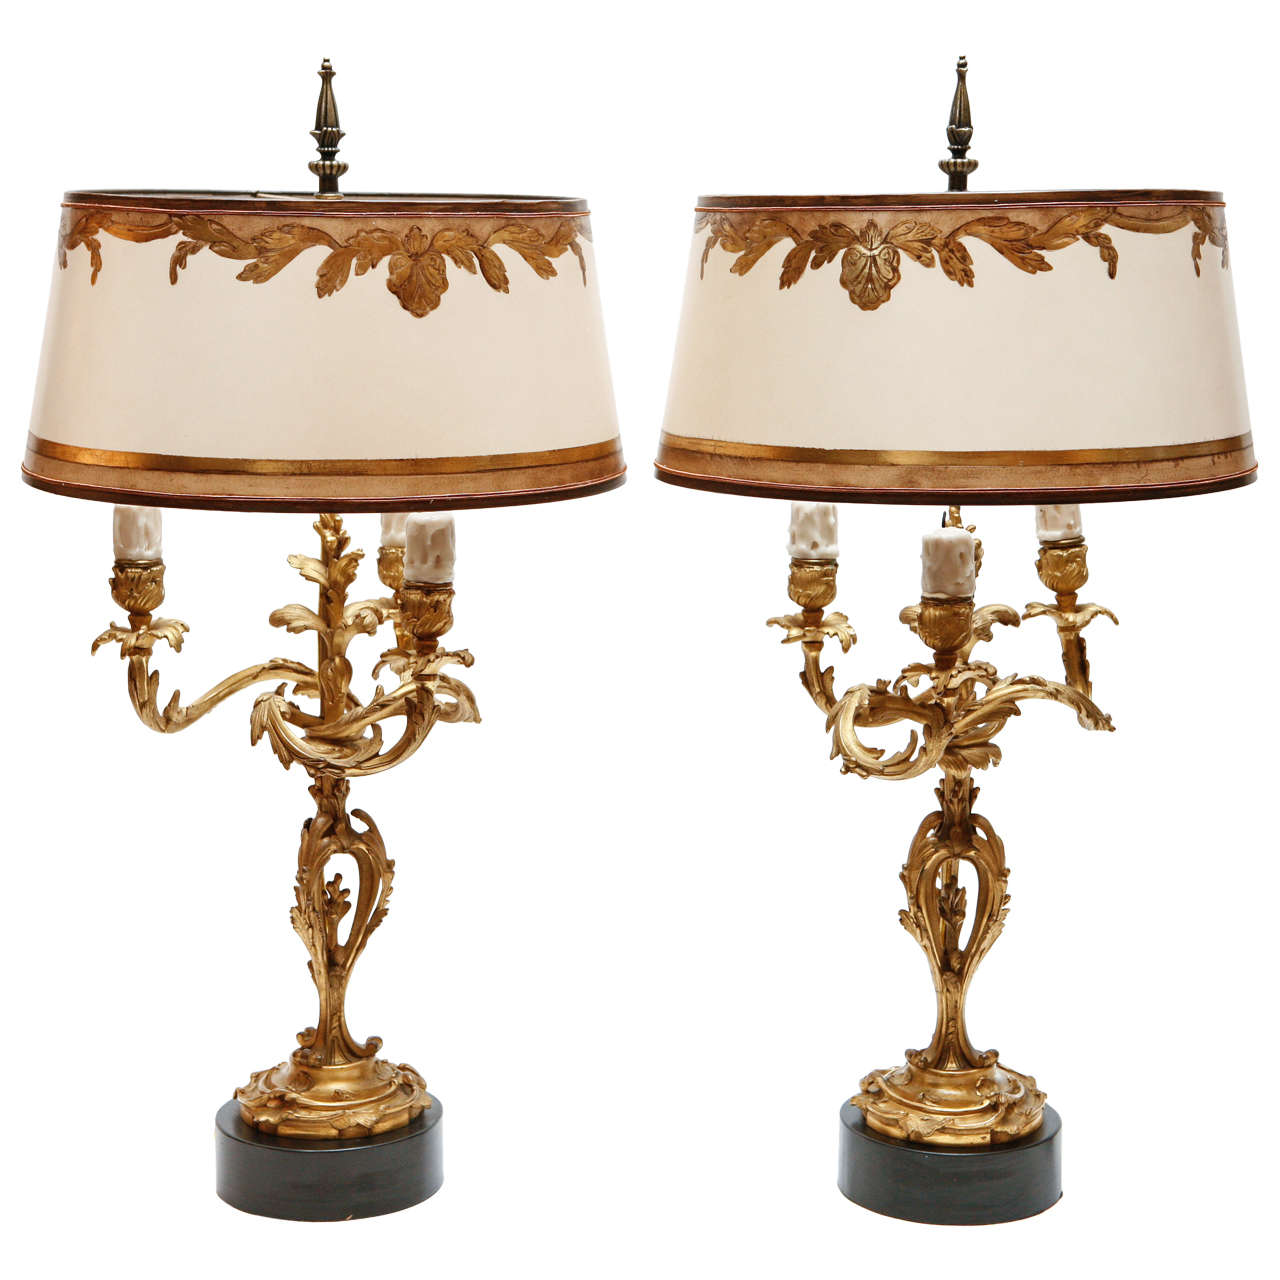 Pair Of 19th C French Dore Bronze Candelabra Lamps